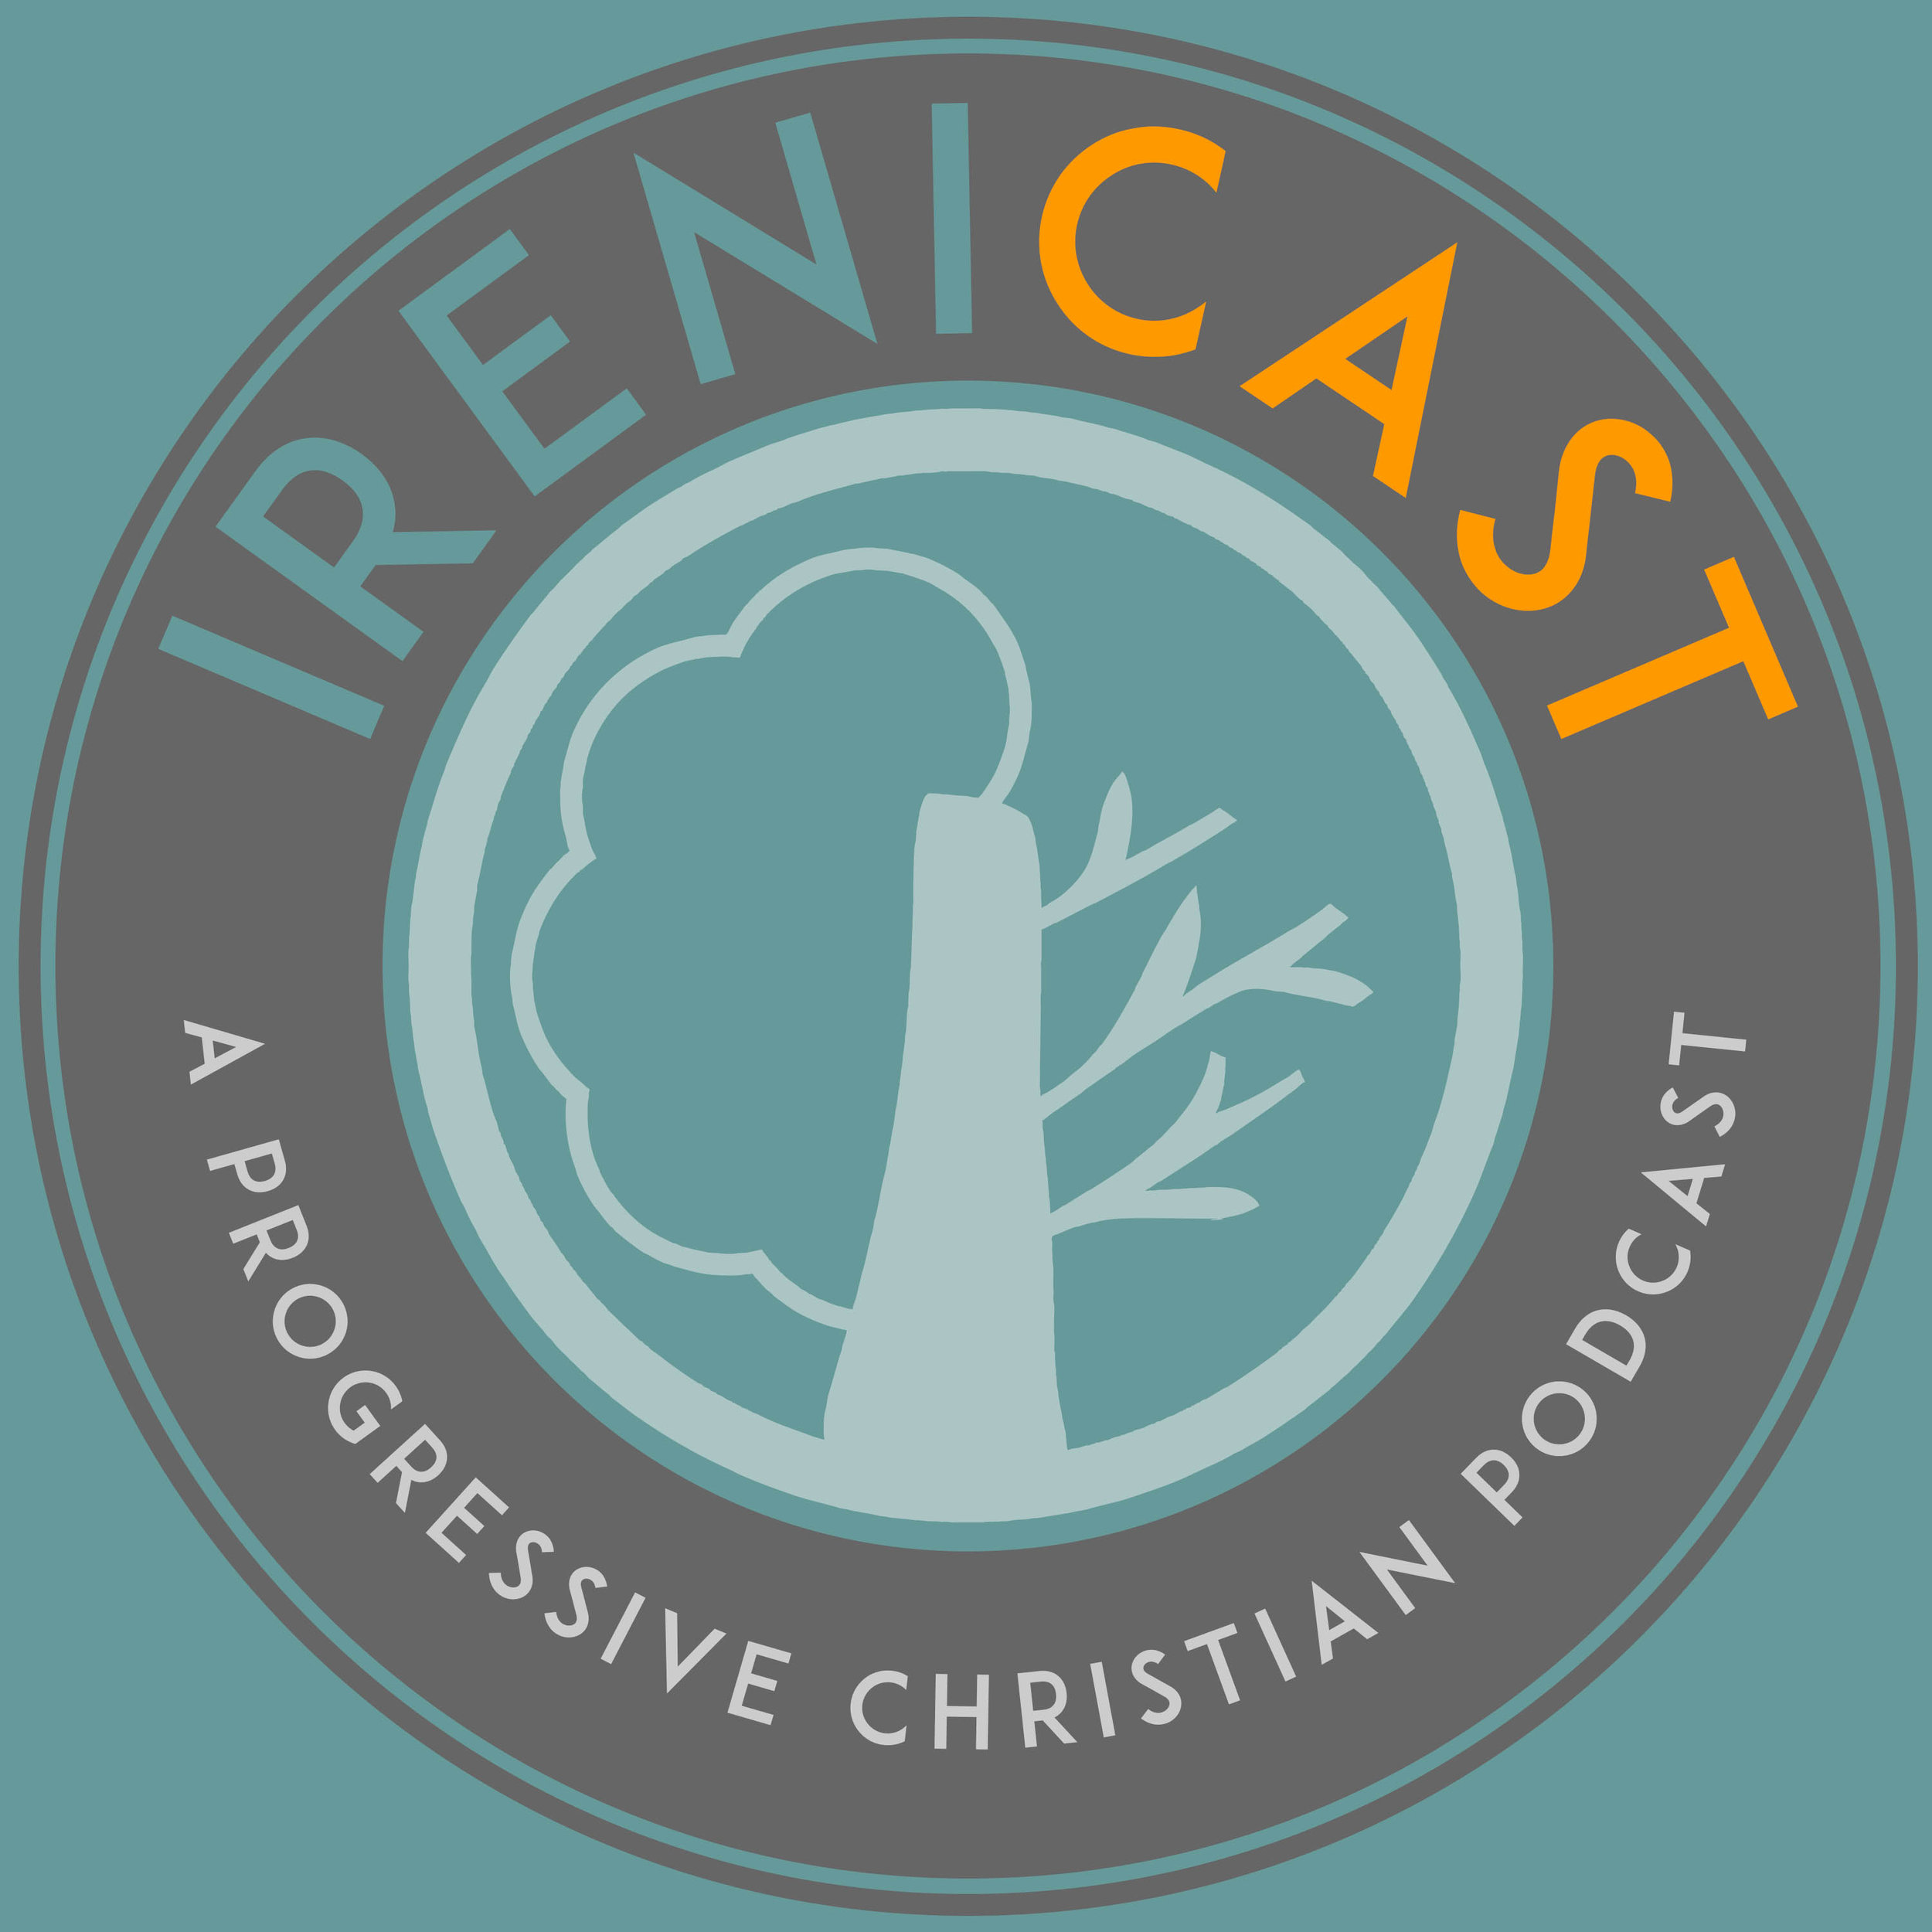 Irenicast - Rethinking and reimagining your faith? That matters. You are not alone. Follow those questions, doubts, and curiosities with us on the 1st and 3rd Tuesday of every month. Hosts Jeff, Bonnie, Casey, Allen, and Raj cultivate thoughtful conversations for the spiritual journeyer. Especially if you're evolving out of Evangelicalism or Christian Fundamentalism, you are Irenicast.